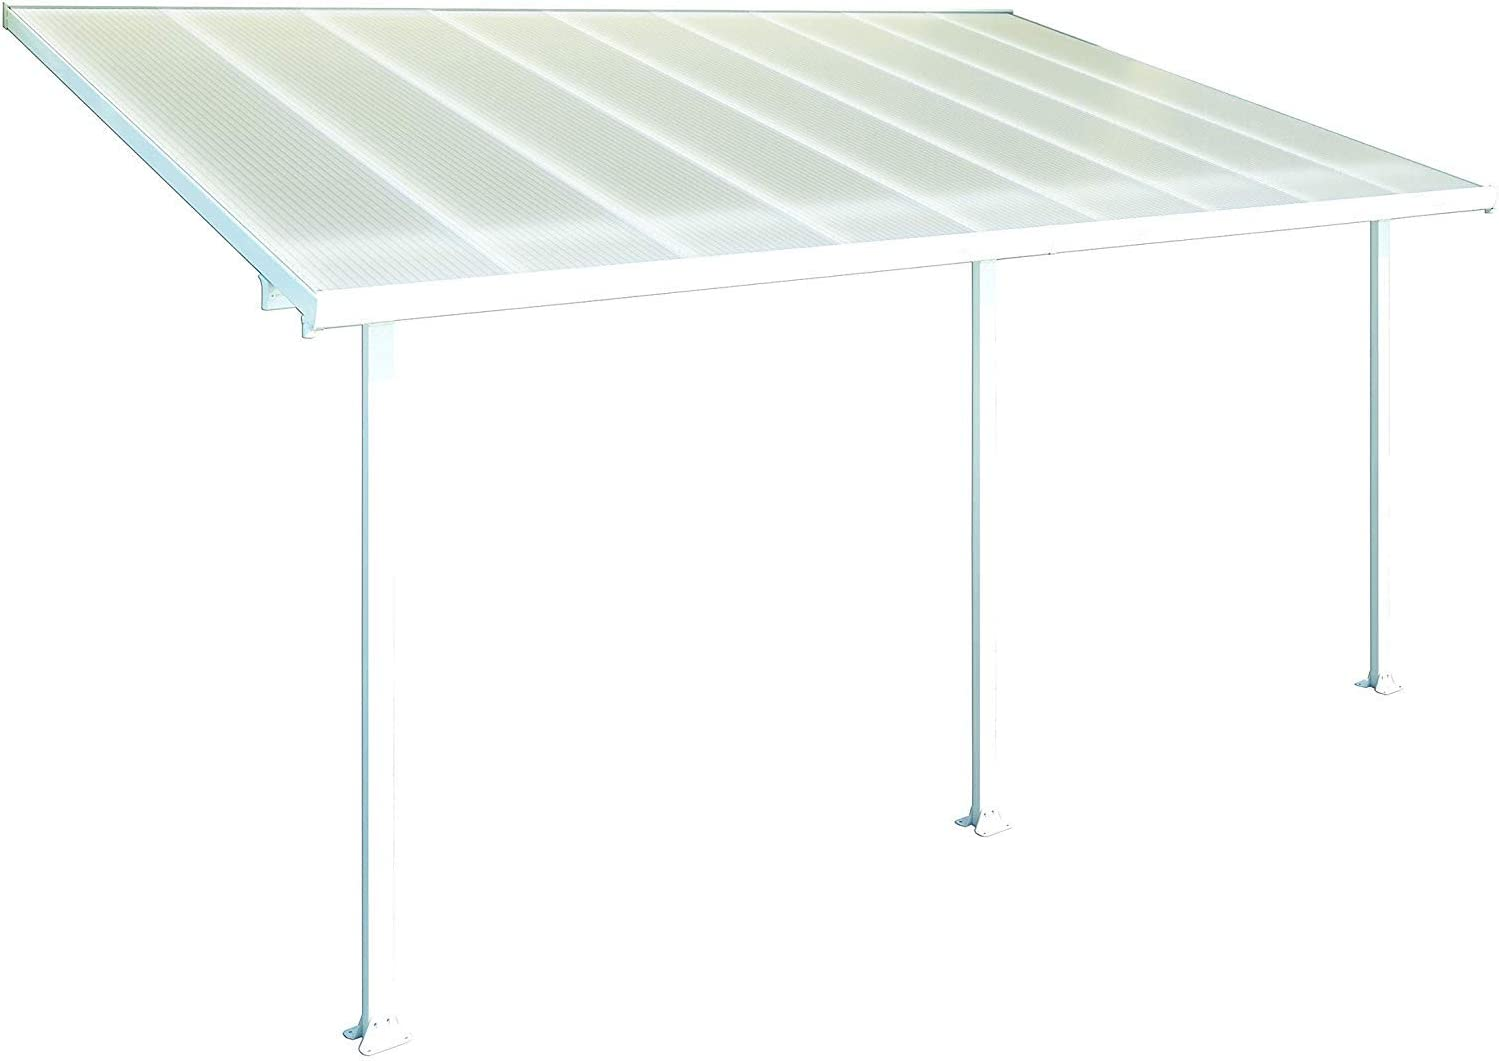 Palram Pergola Patio Cover Feria - Robust Structure for Year-round Use